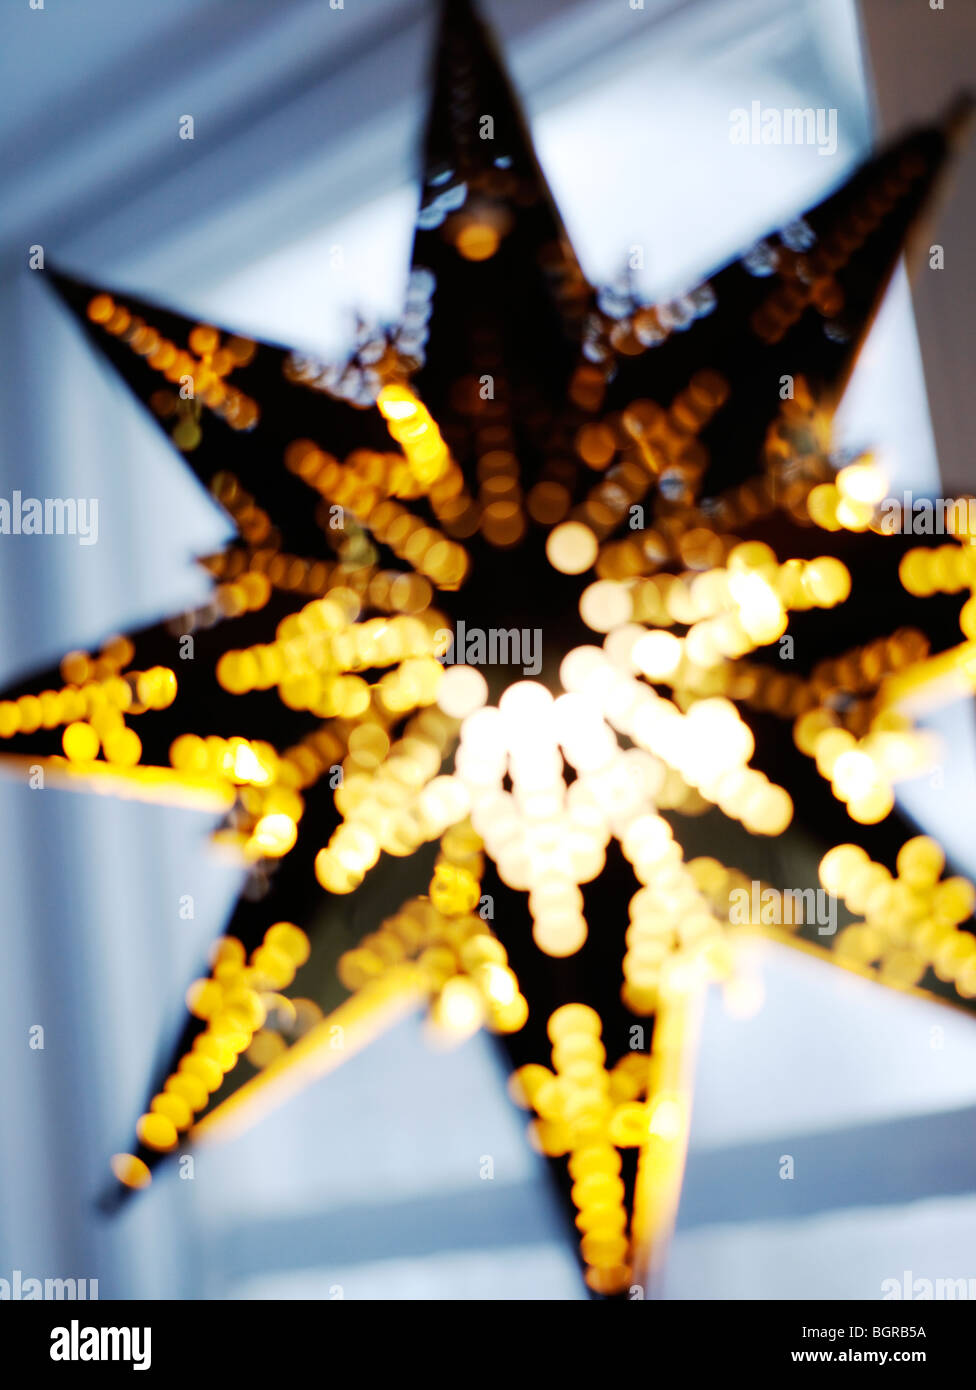 A star-shaped lantern hung in windows during Advent and Christmas. - Stock Image